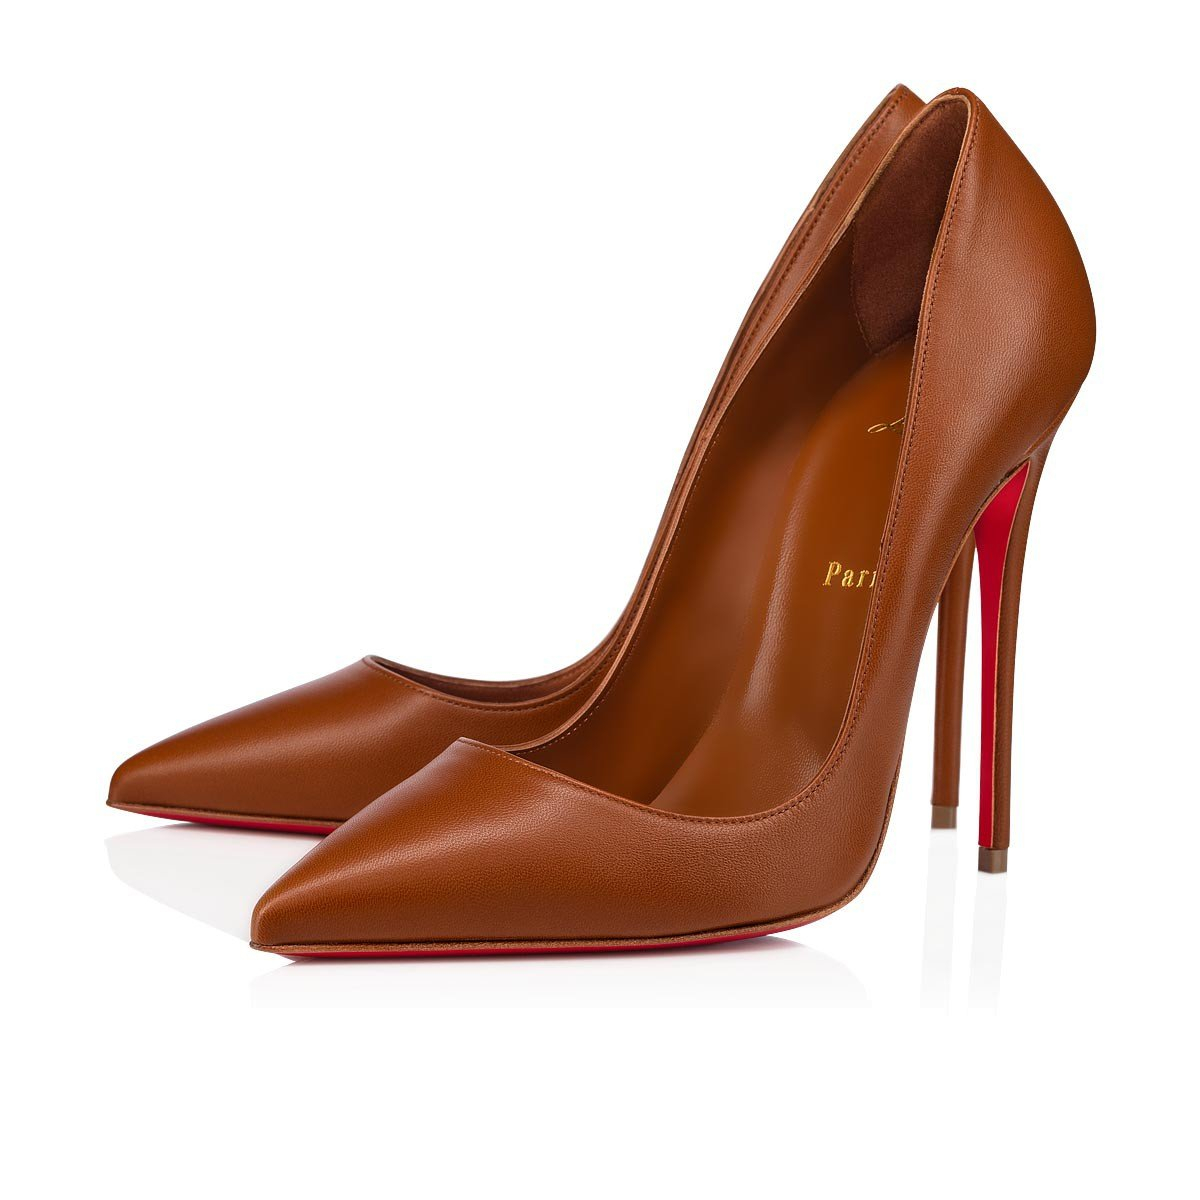 Image of Christian Louboutin New pointed high heels 3.16